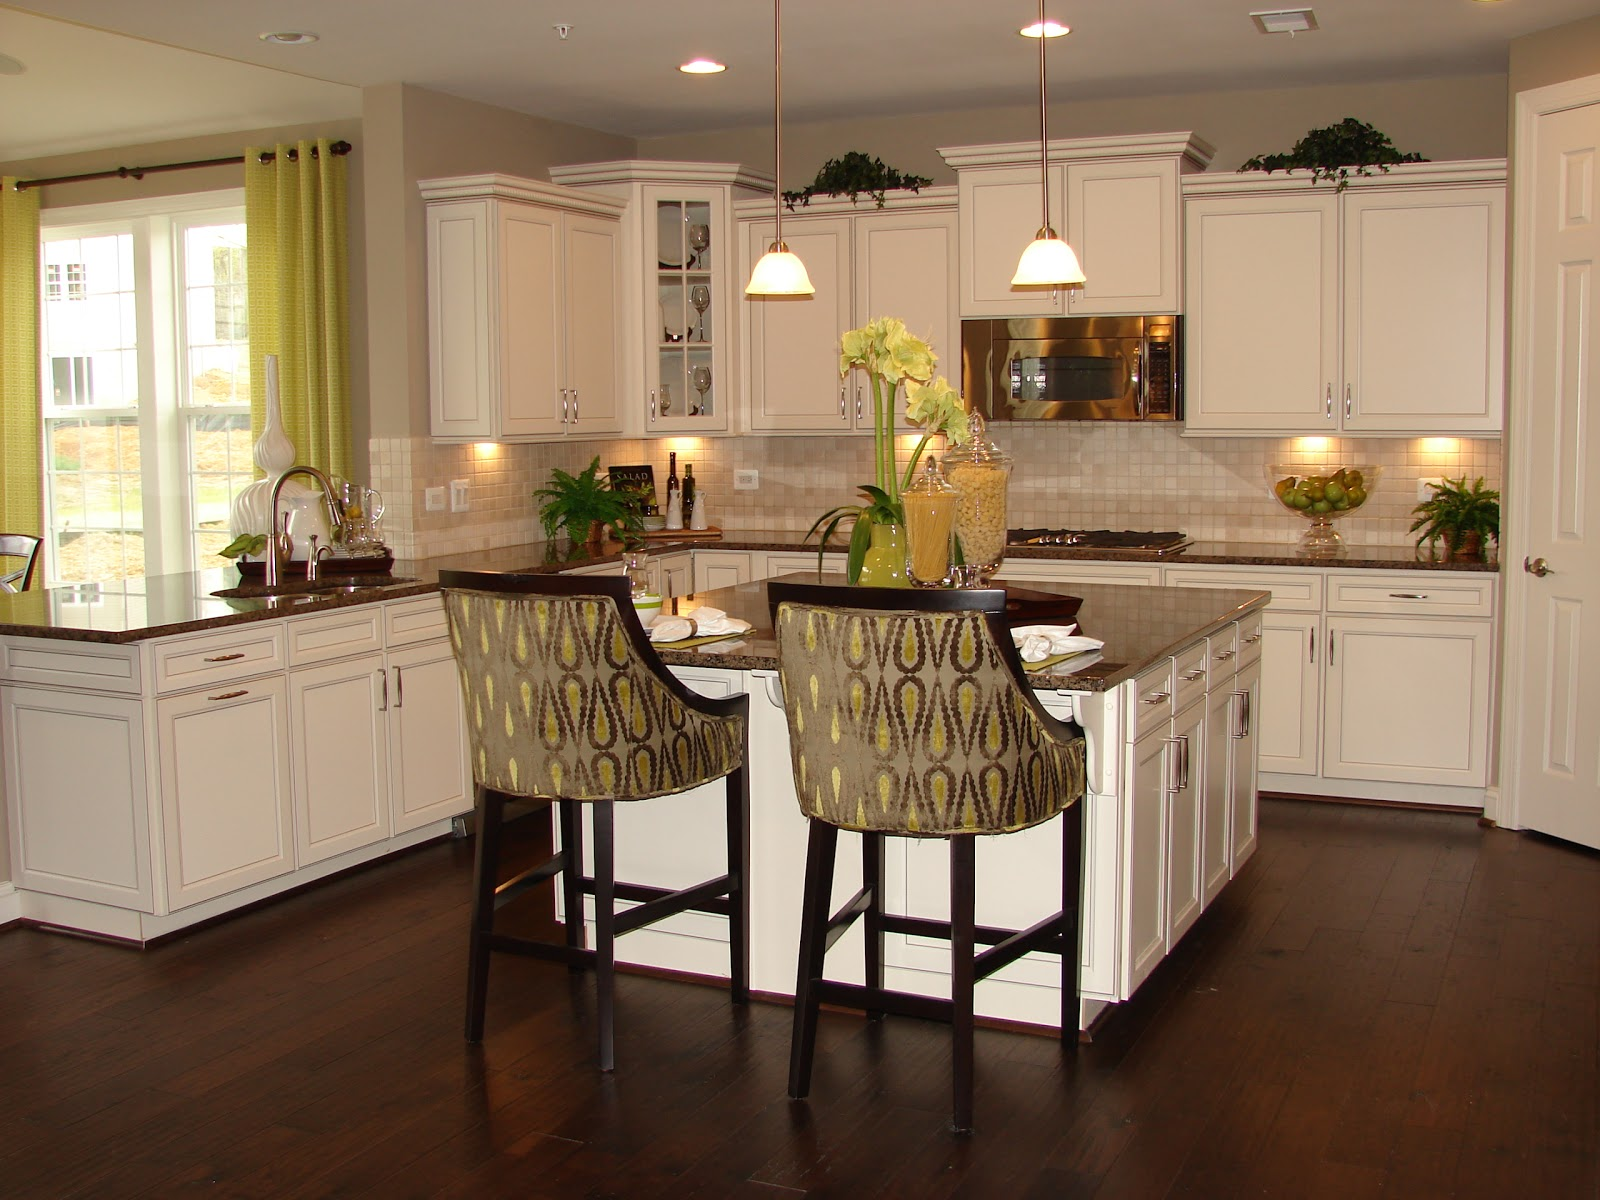 white kitchen cabinets brown island off white kitchen cabinets Building